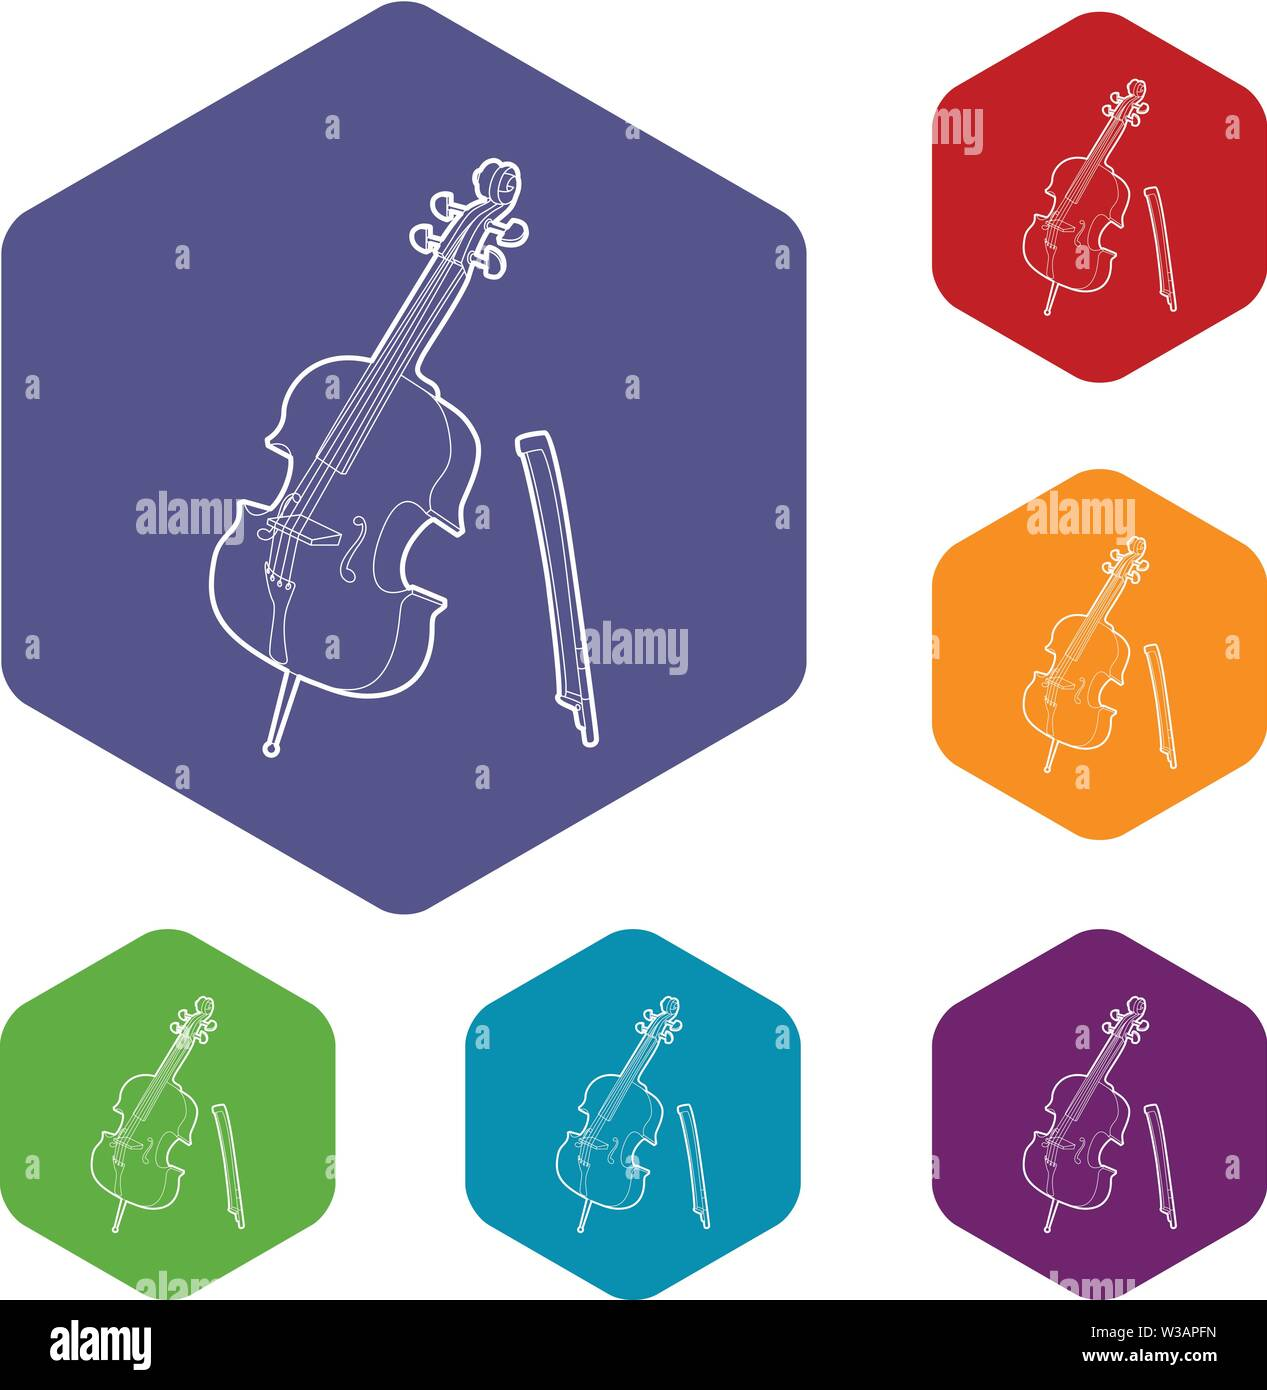 Violin icons vector hexahedron - Stock Image